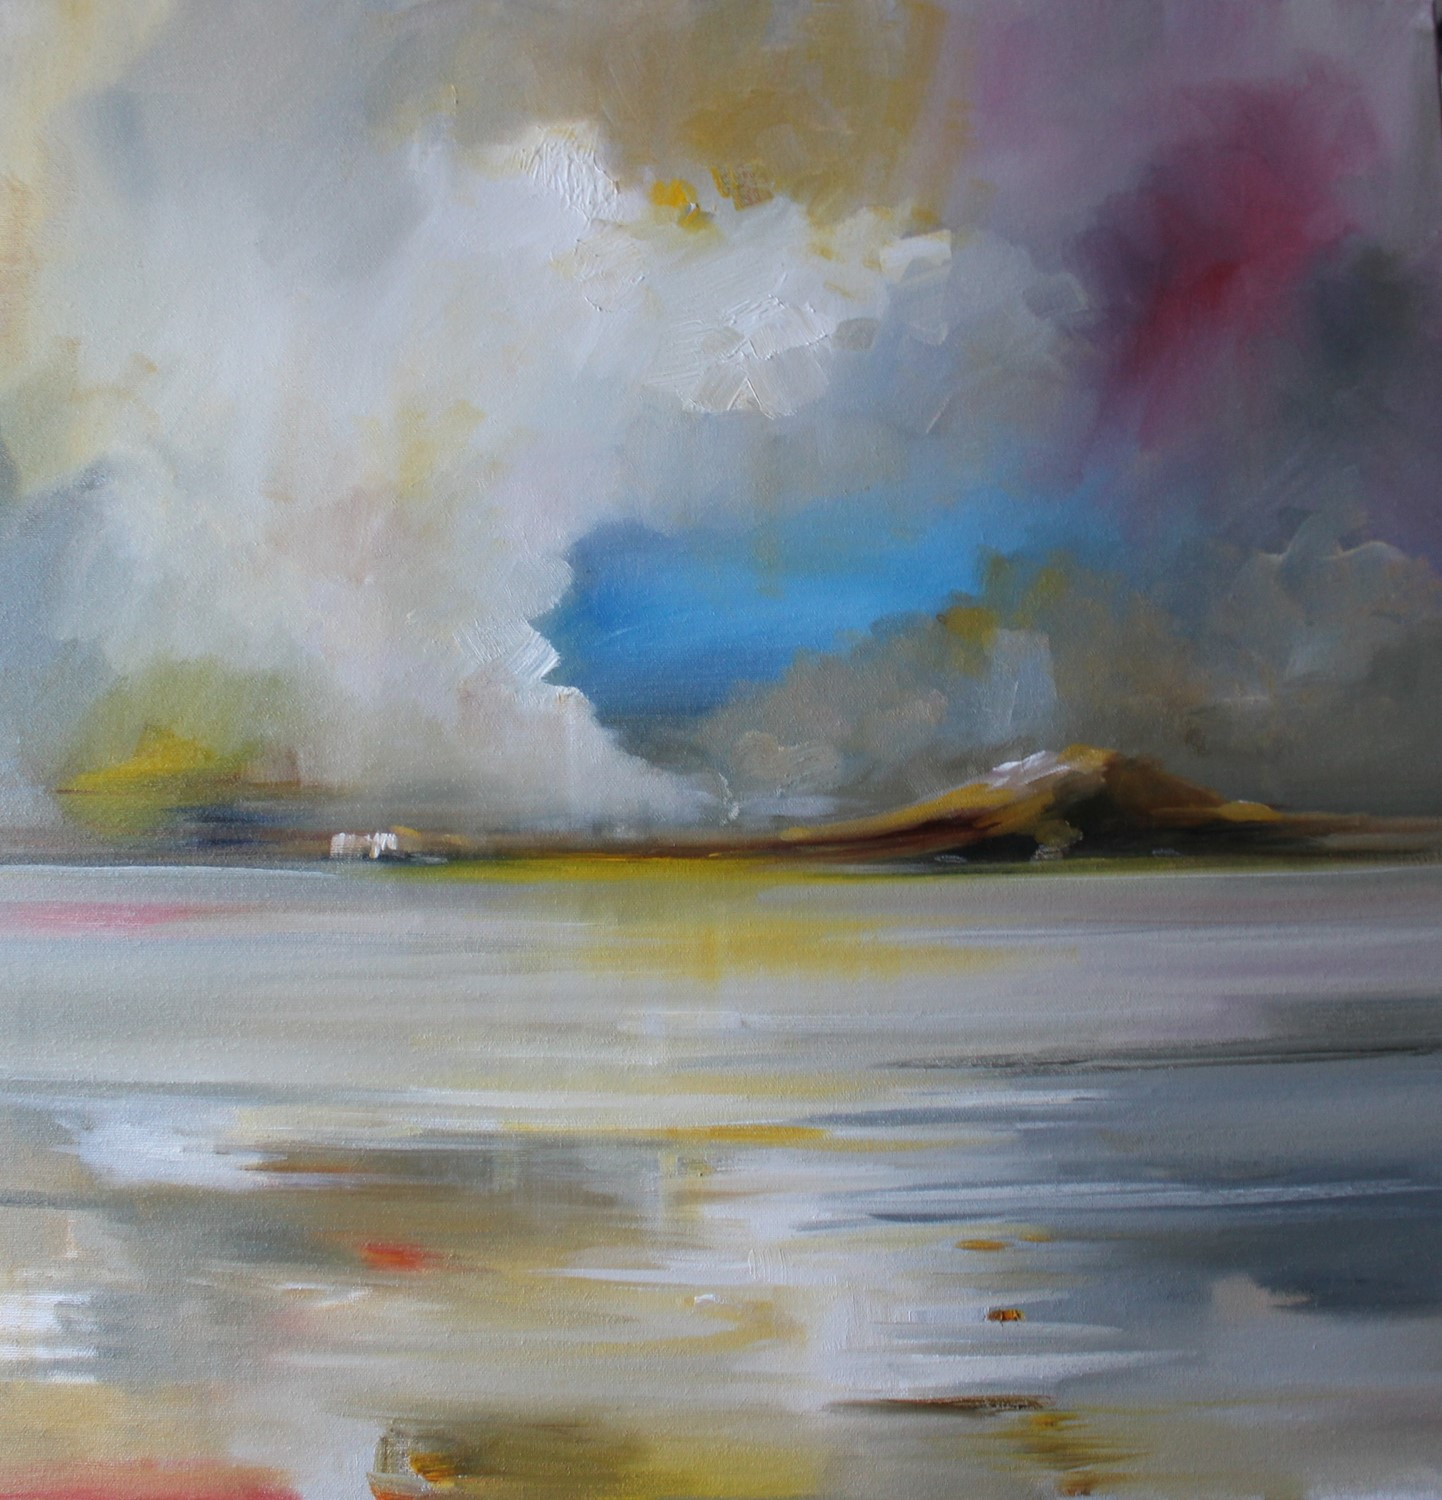 'Storm Clouds are Clearing' by artist Rosanne Barr